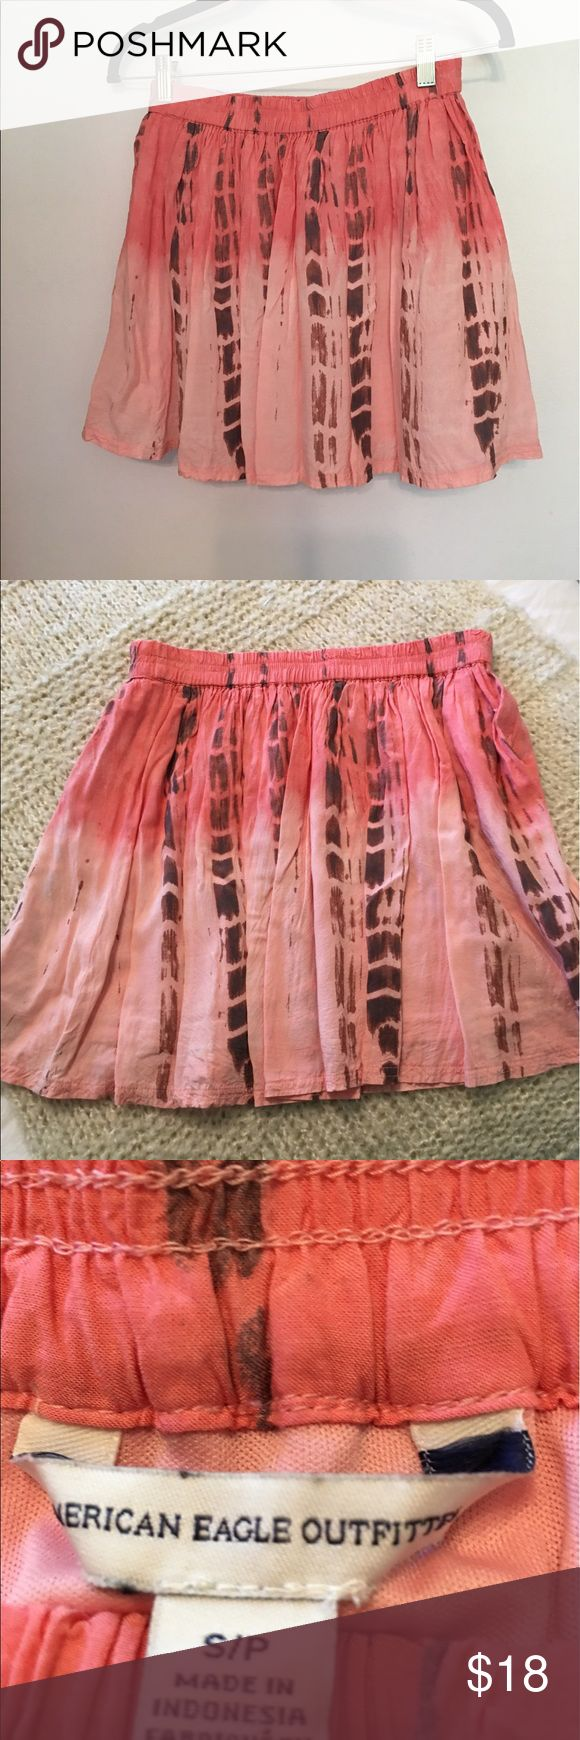 American Eagle Outfitters ombré skirt American Eagle Outfitters ombré mini skirt. American Eagle Outfitters Skirts Mini